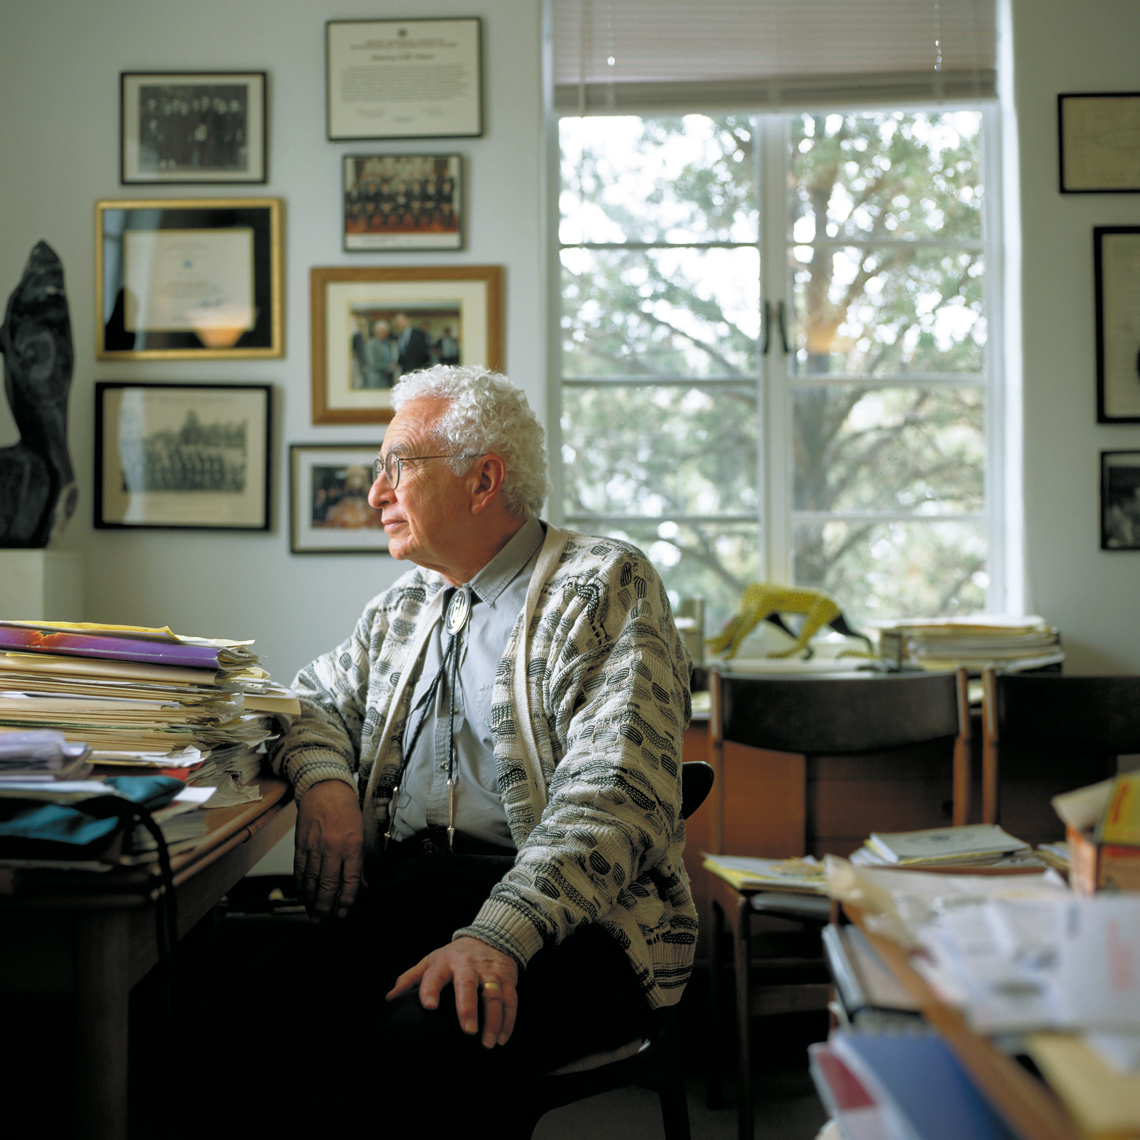 Murray Gell-Mann - Santa Fe Institute - Japanese Newsweek